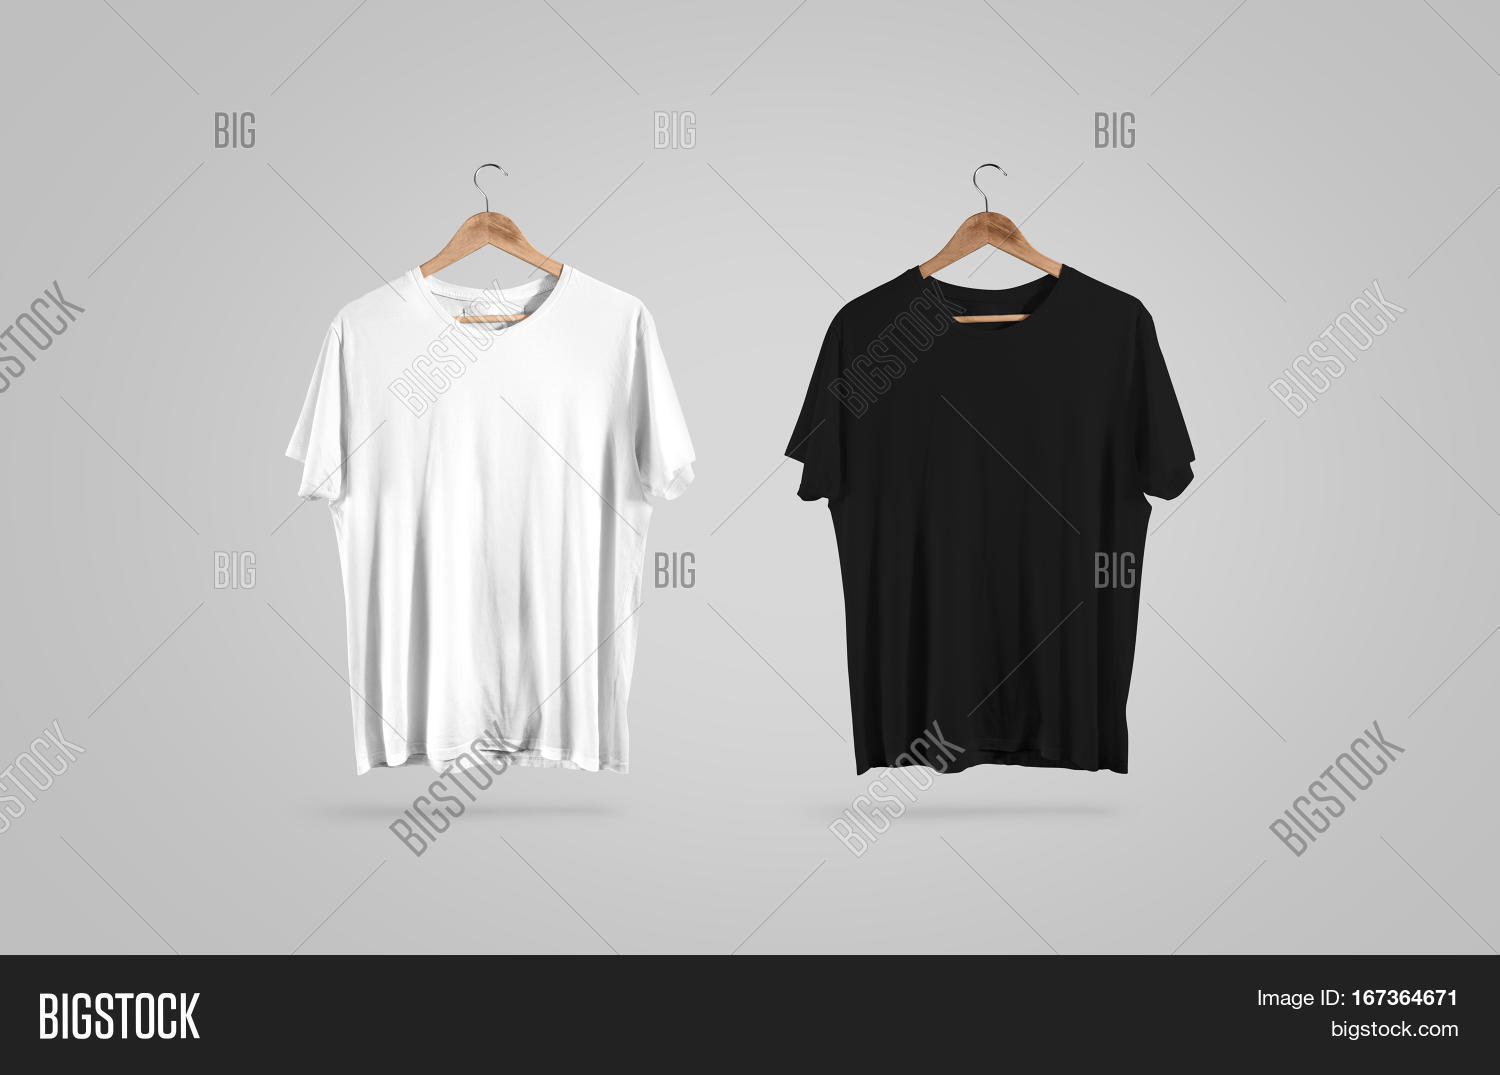 Black t shirt mock up - Blank Black And White T Shirt On Hanger Design Mockup Clear Plain Cotton